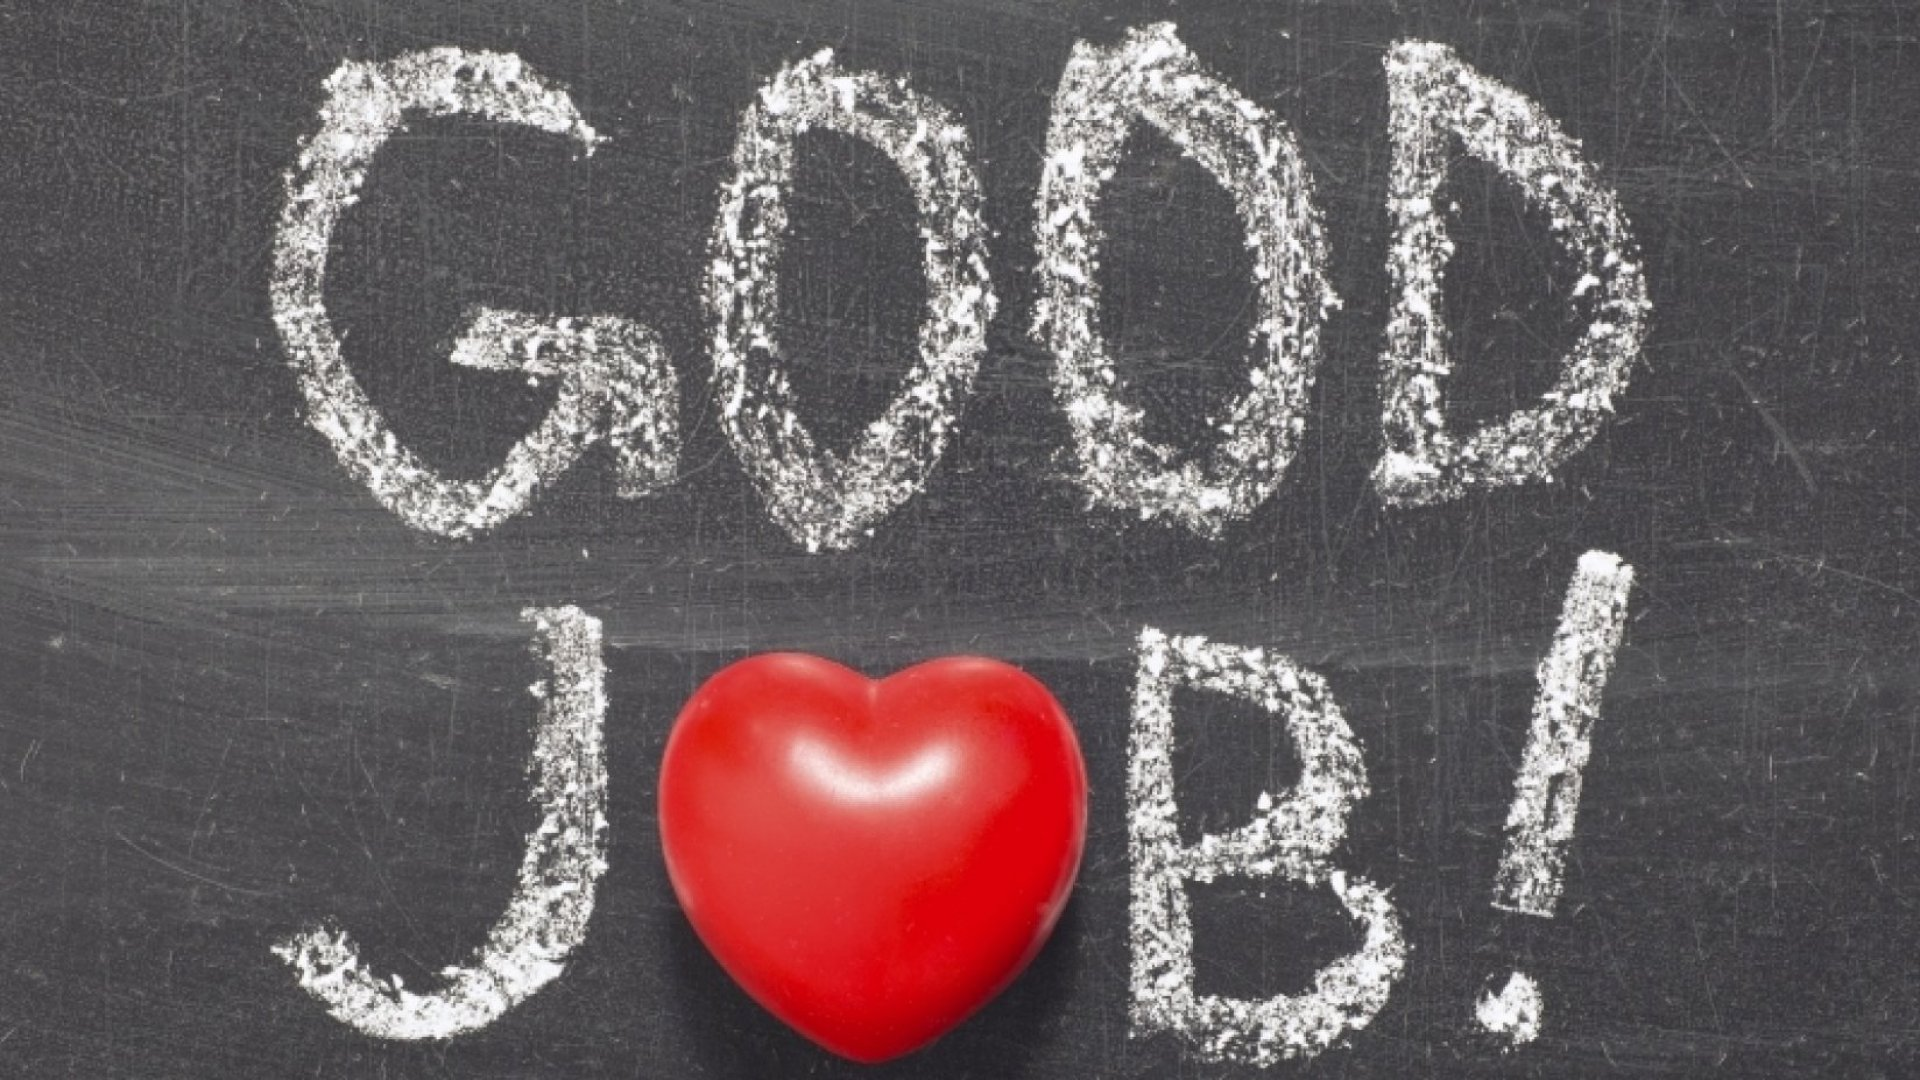 6 Great Ideas for Employee Appreciation Day